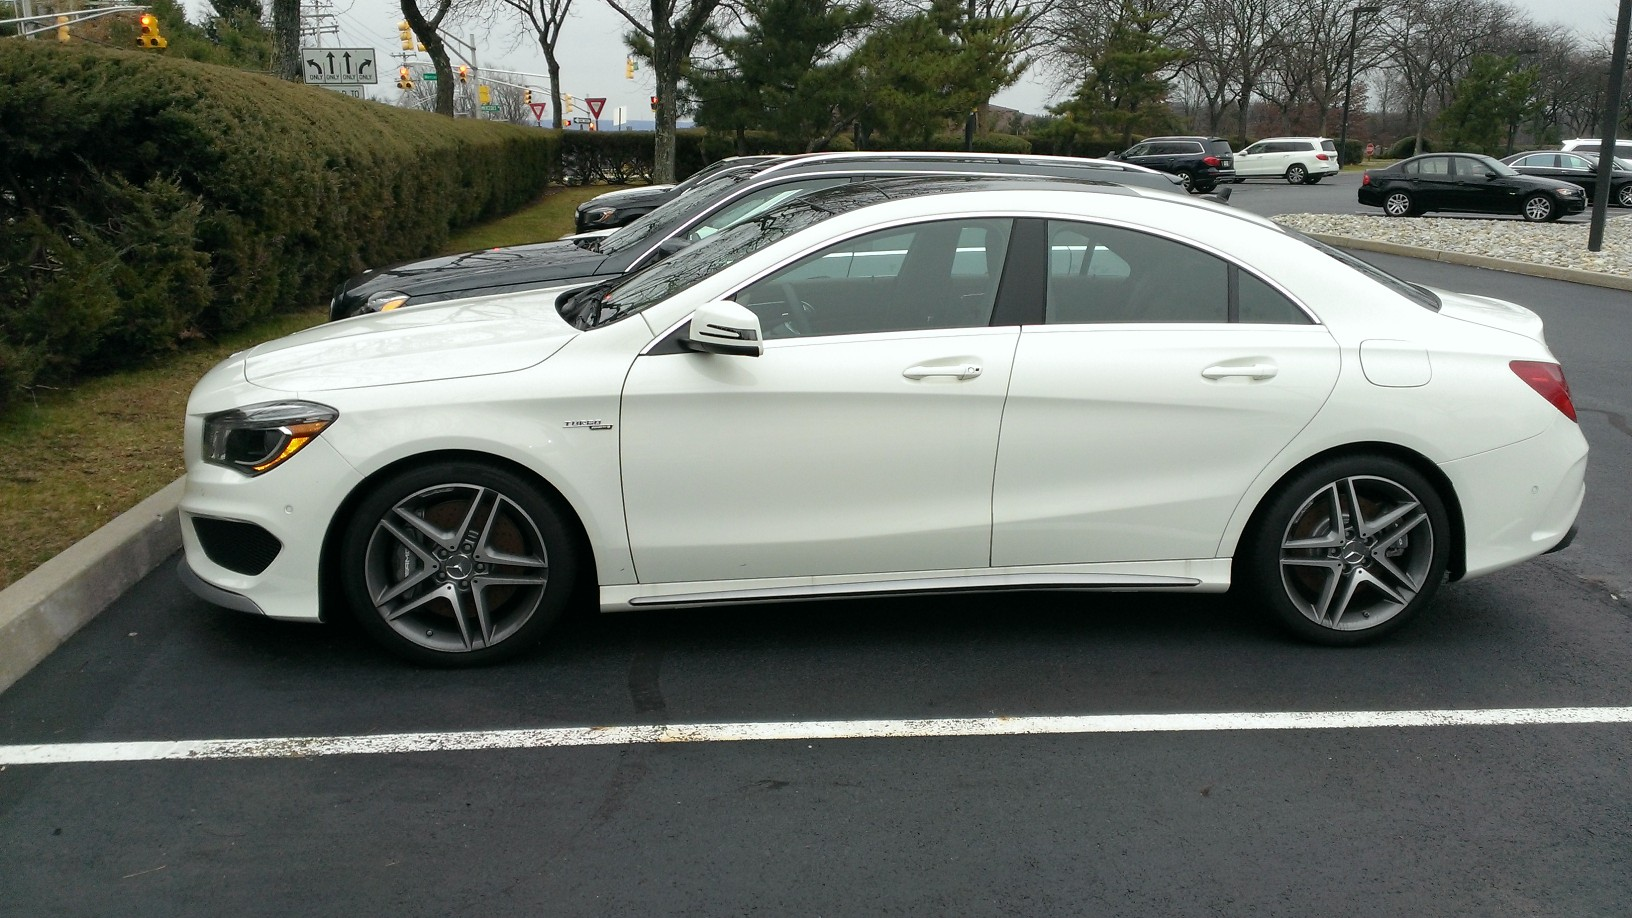 pictures of cla 45 amgscirrus white